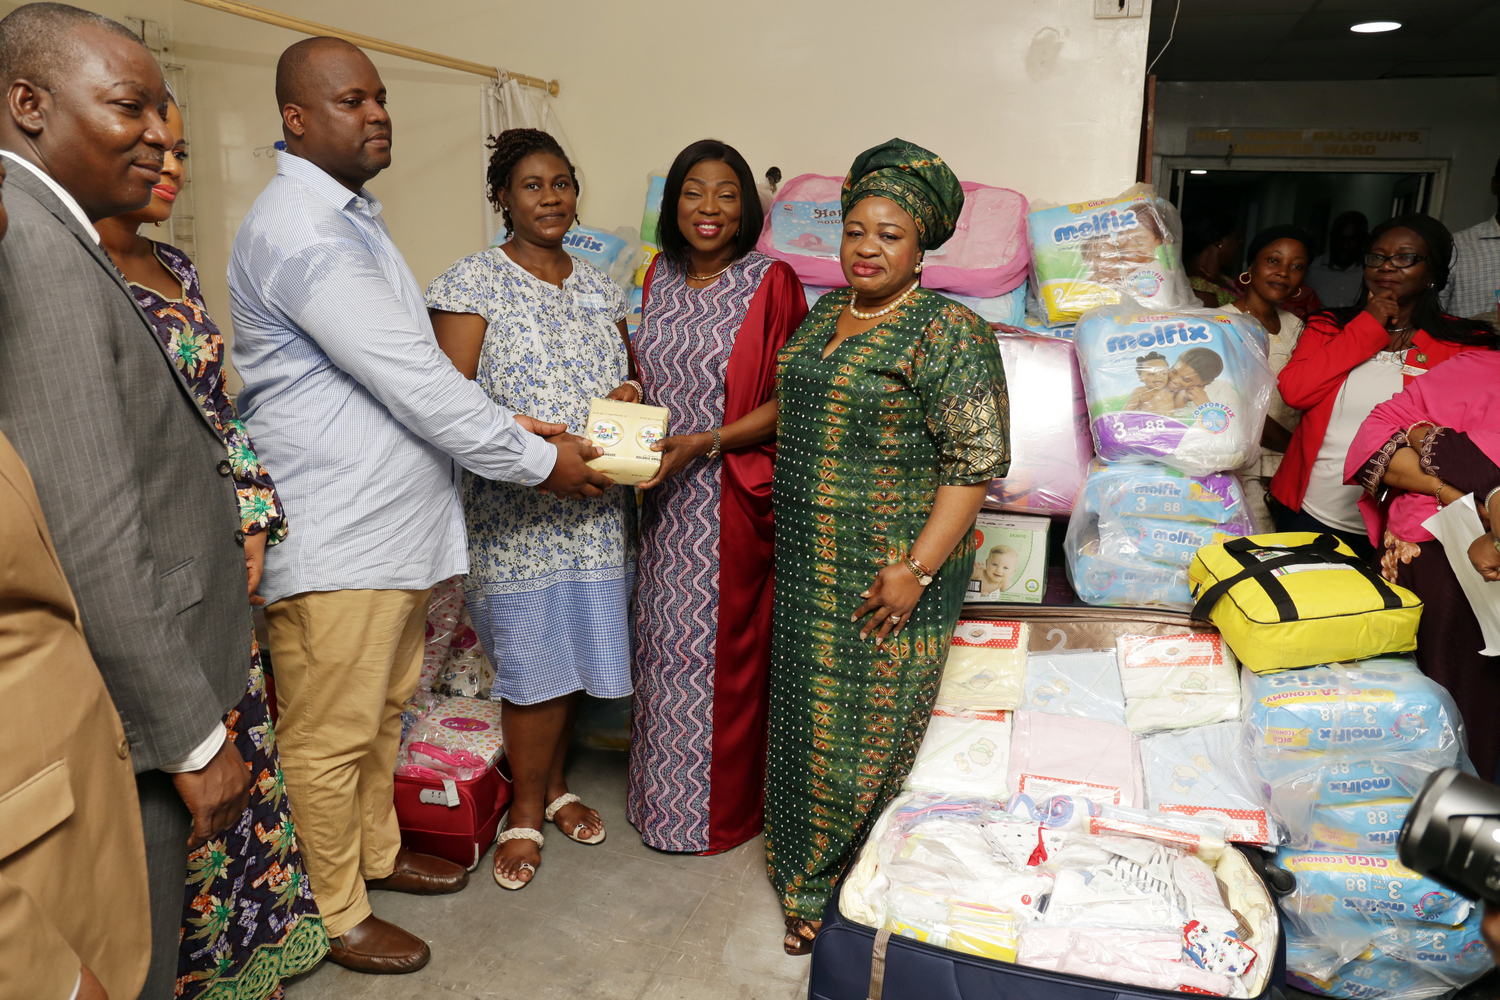 Wife of Lagos State Governor, Mrs. Bolanle Ambode (2nd right), presenting gifts to Mr. Augustine and Jessica Obiefuna for their newborn quintuplets, at the Island Maternity Hospital, Lagos, on Wednesday, 16 May, 2018. With them are COWLSO members, Mrs. Ronke Solomon (right); Mrs. Oyindamola Ogunsanwo (2nd left) and Managing Director of the hospital, Dr. Ademuyiwa Eniayewun.